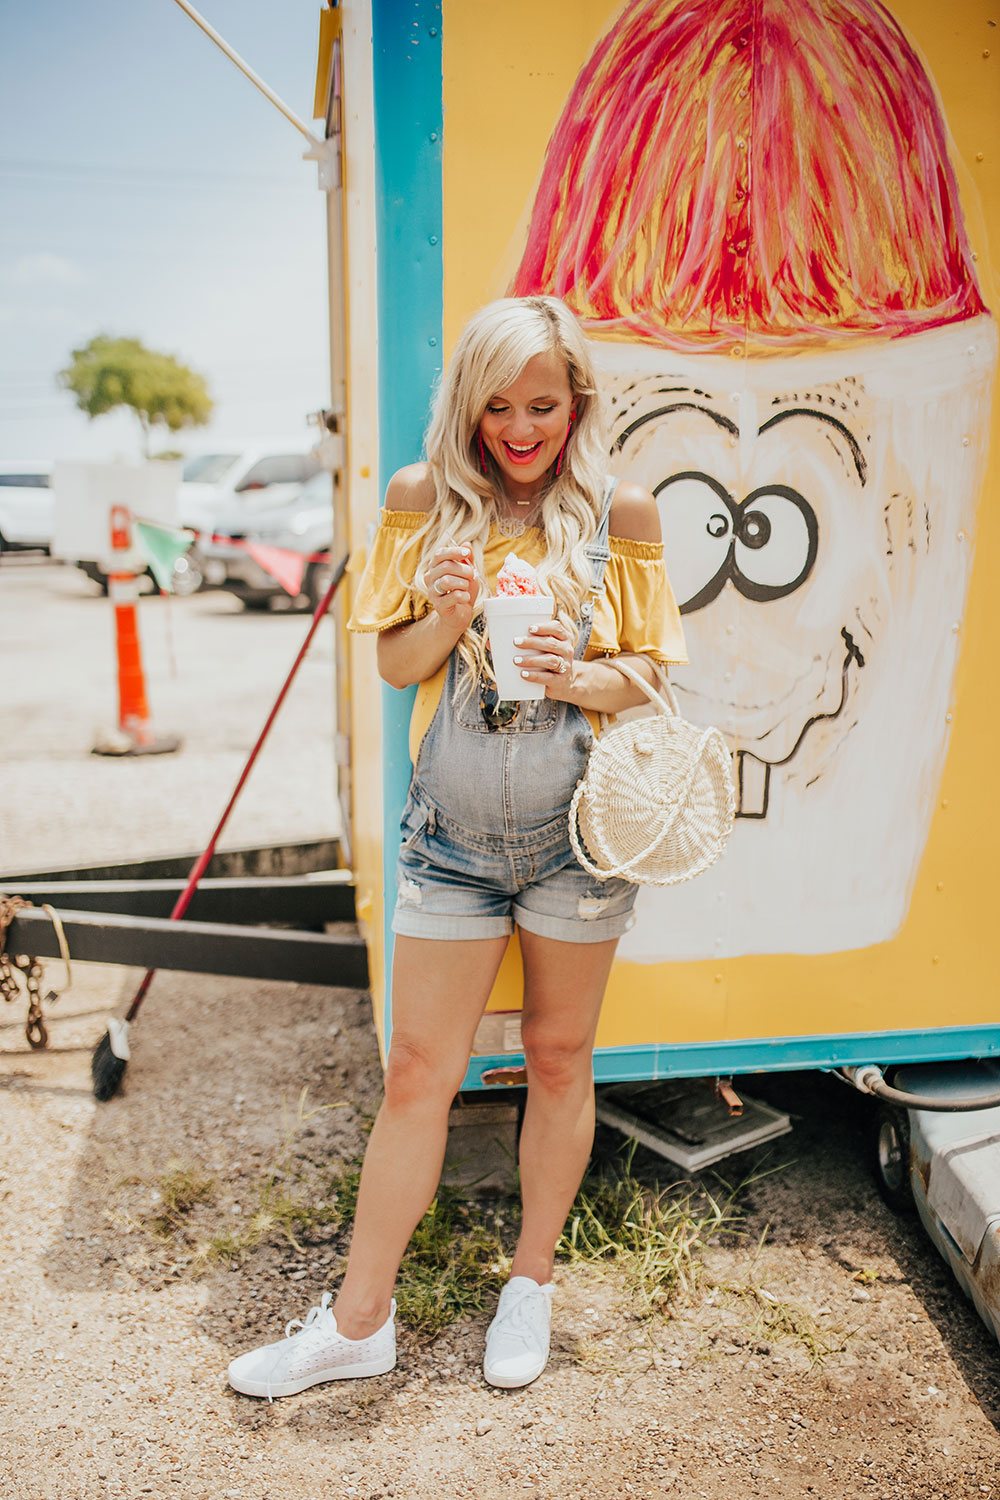 12a756974fb11 With maternity brand must-haves like A Pea in a Pod, Motherhood Maternity  and Jessica Simpson, Macy's has endless options when it comes to finding  stylish, ...